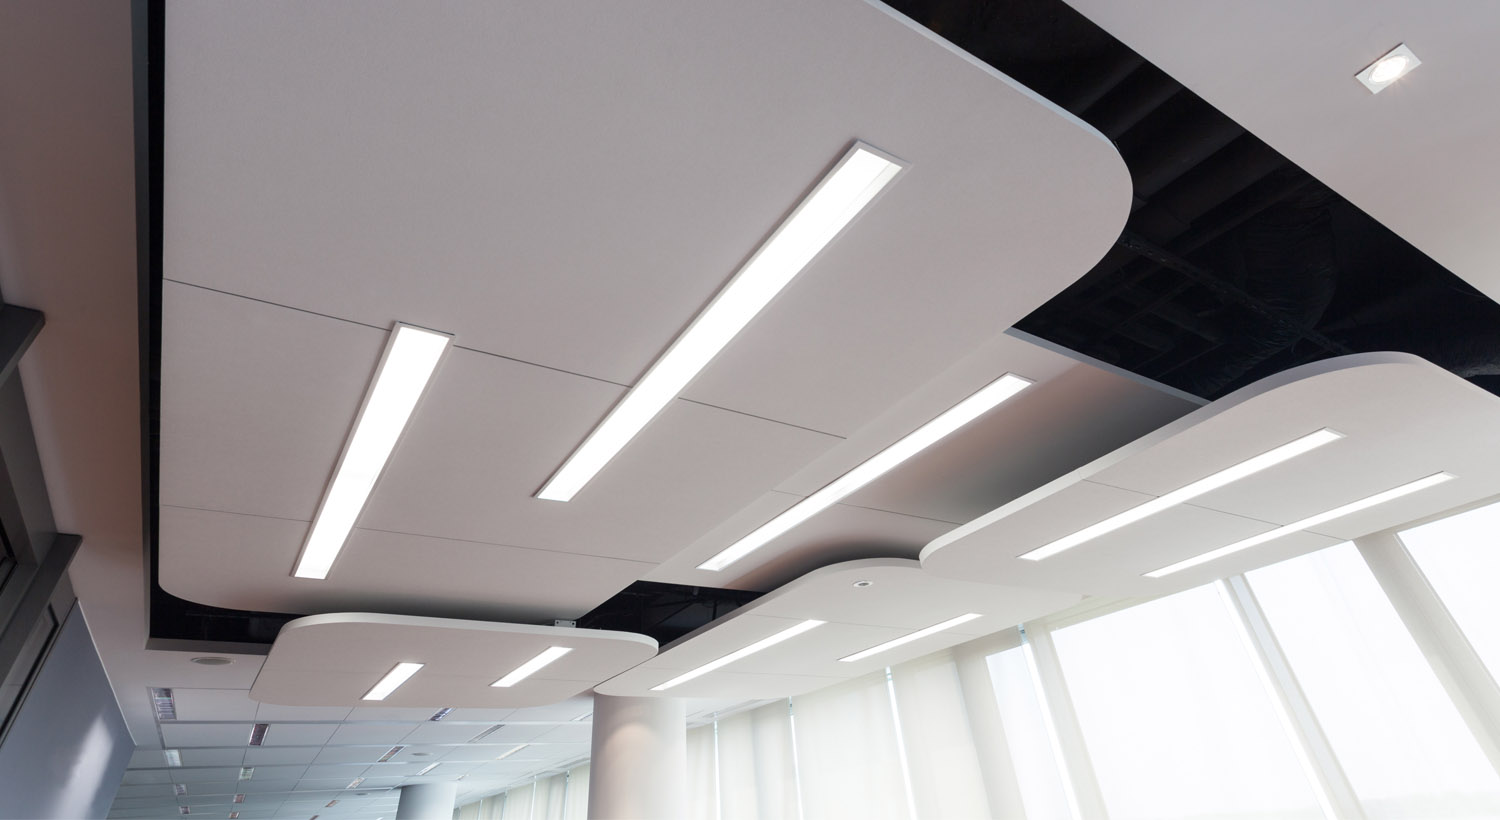 Why Soundproof your Ceilings?